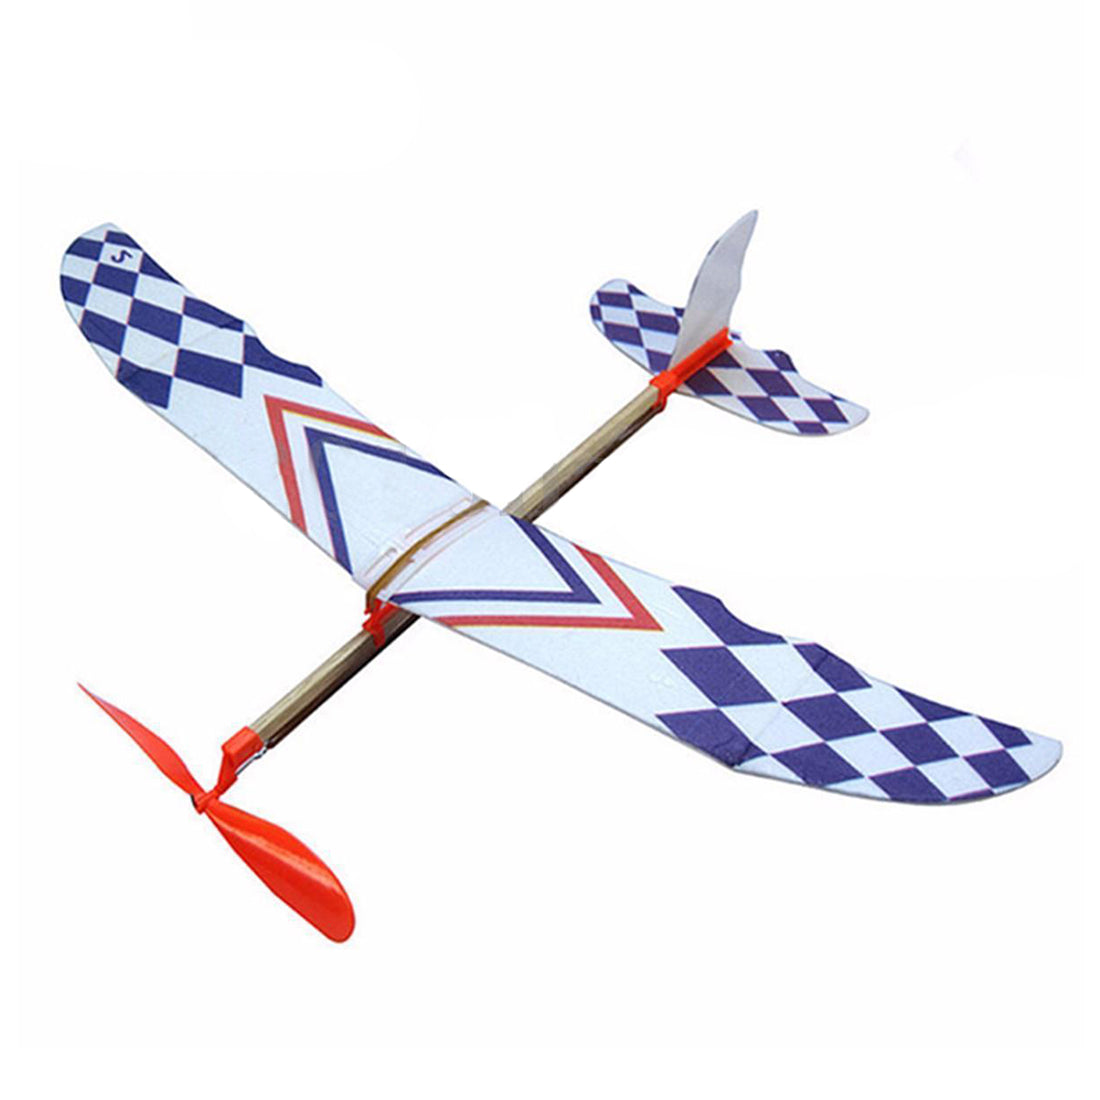 Elastic Rubber Band Powered DIY Foam Plane